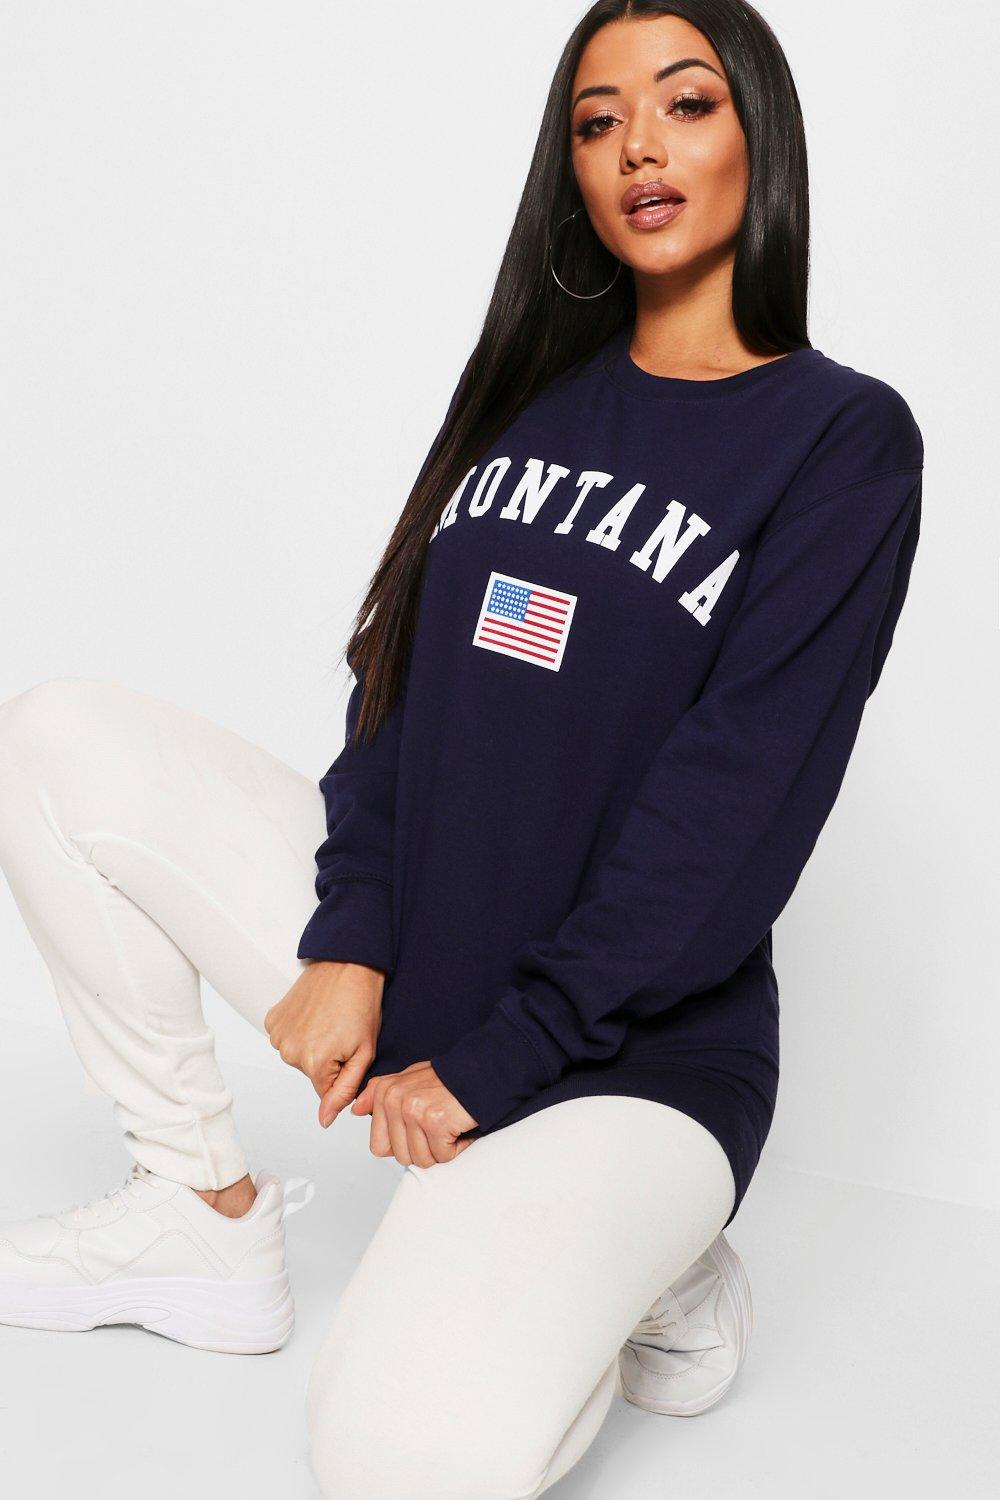 Montana Slogan Sweat